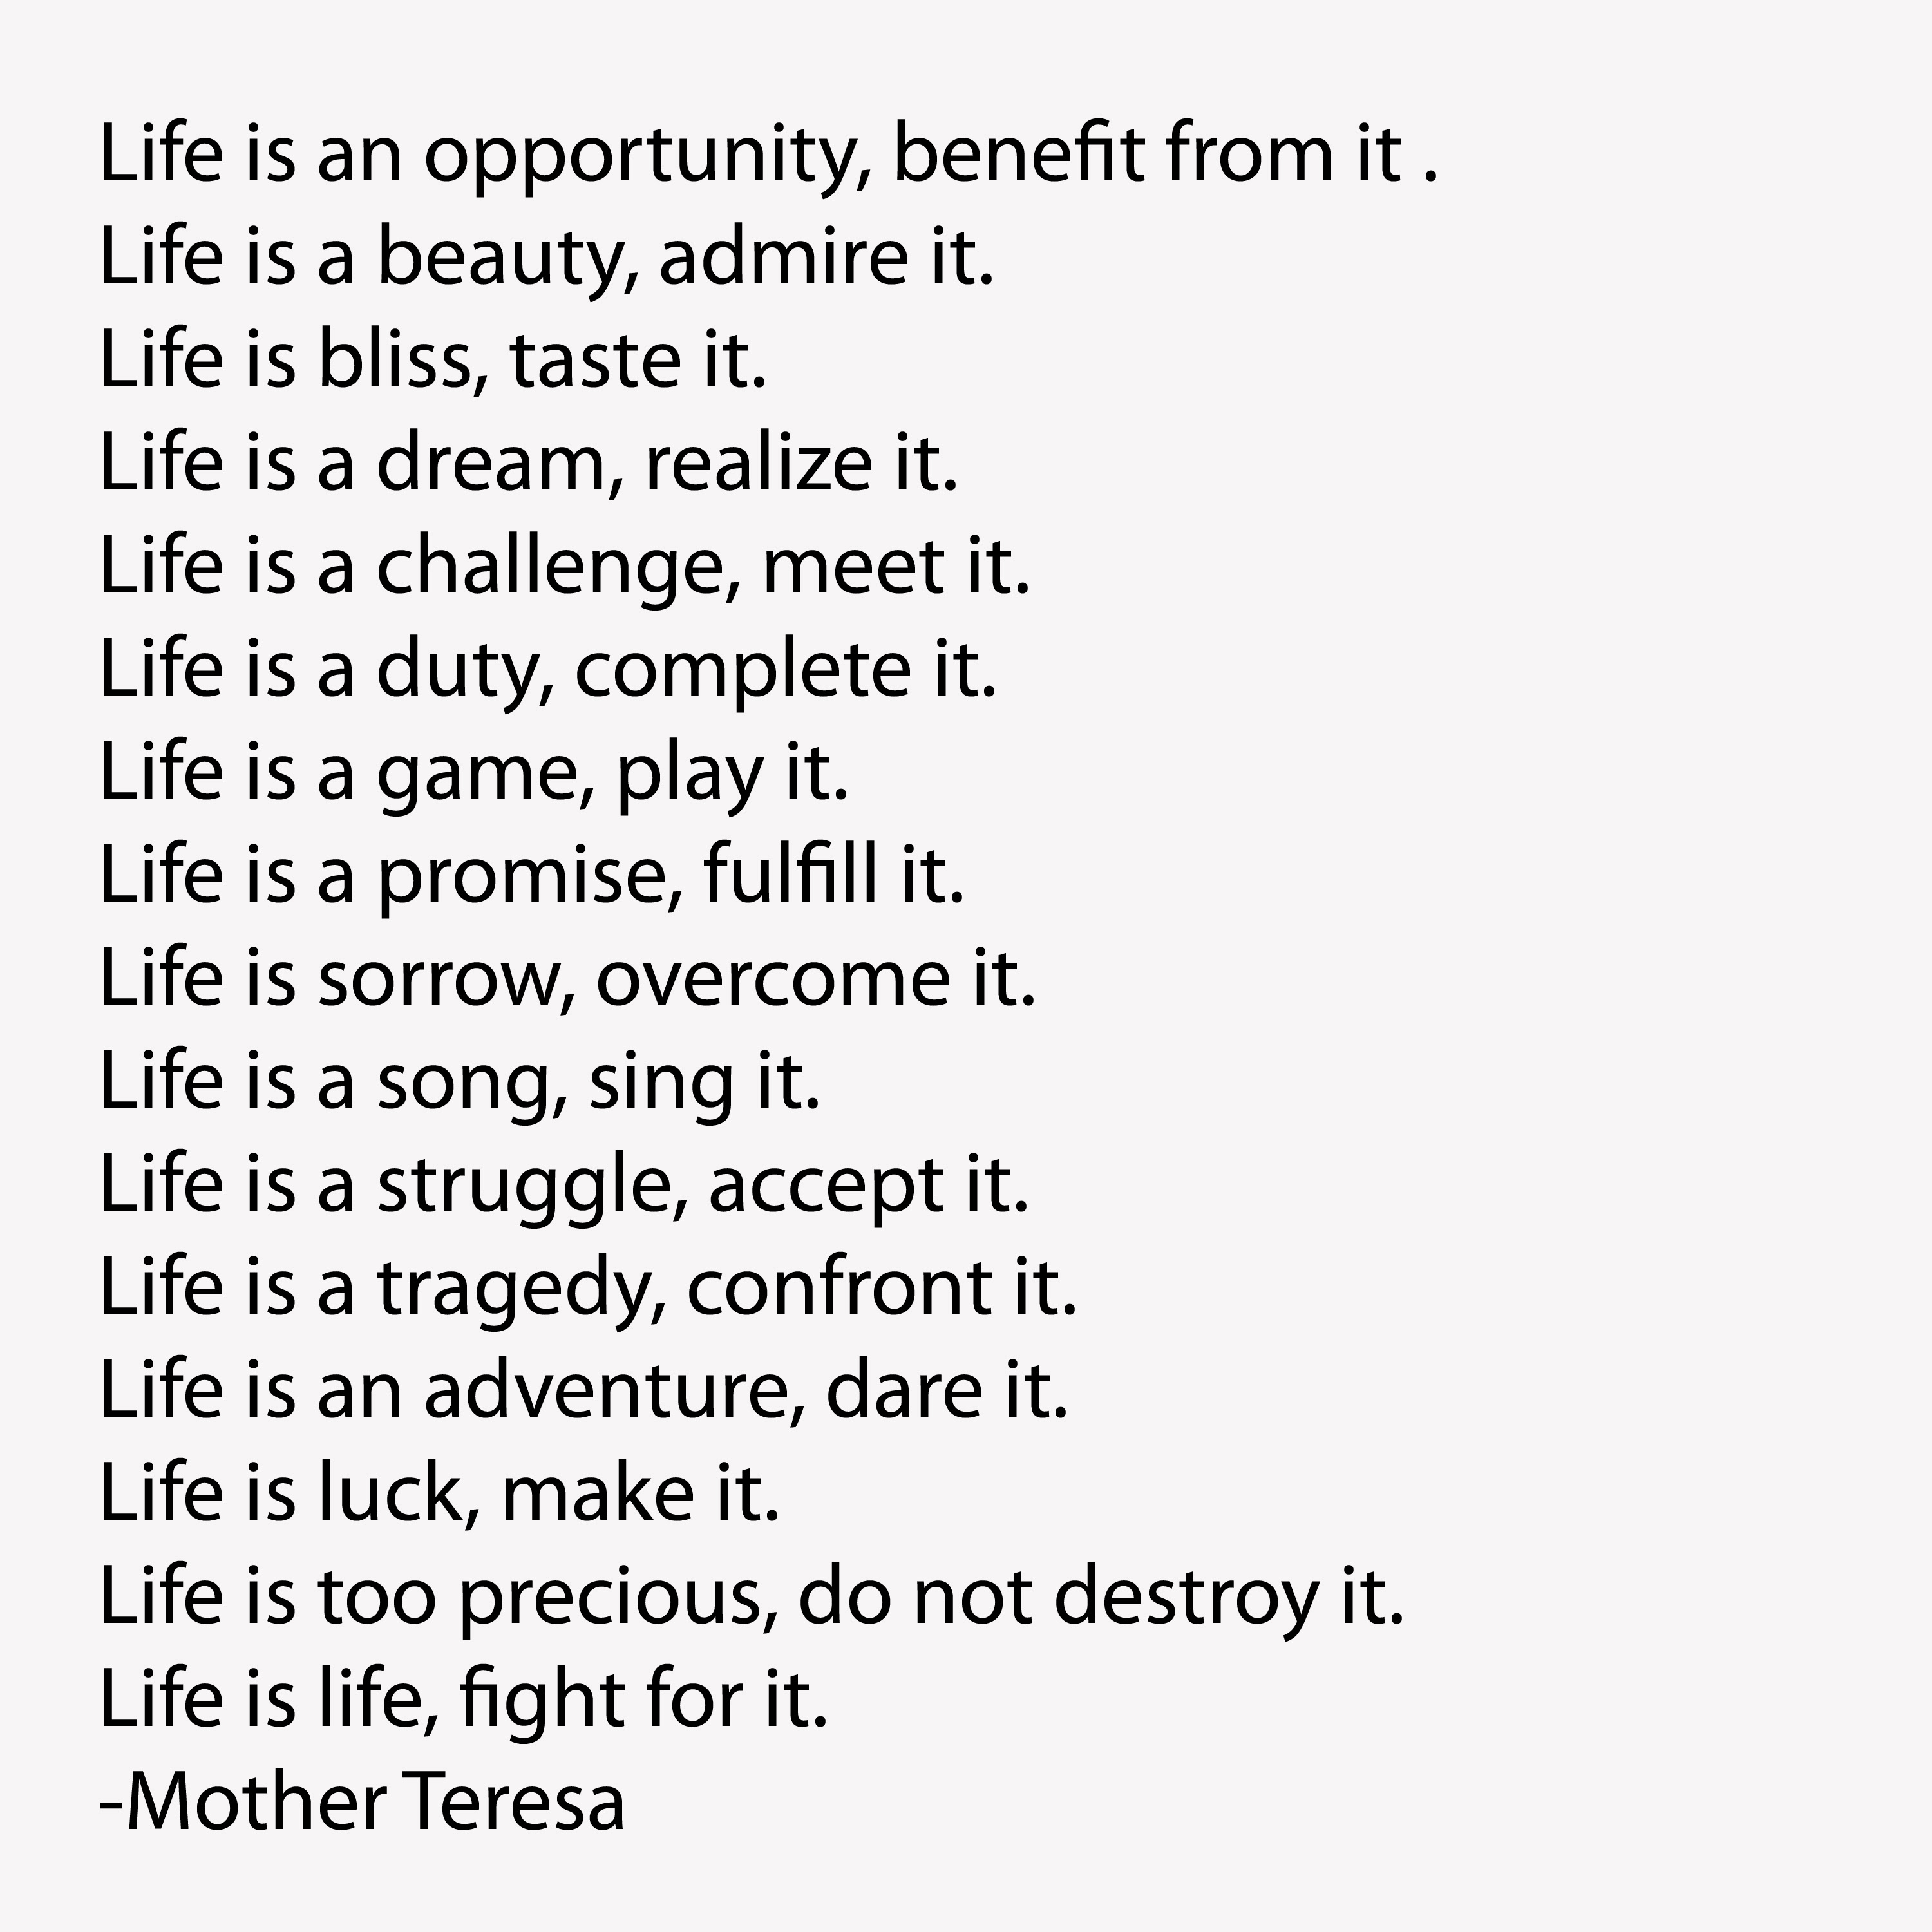 Mother Teresa Quotes On Life Is An Opportunity 35228 Usbdata